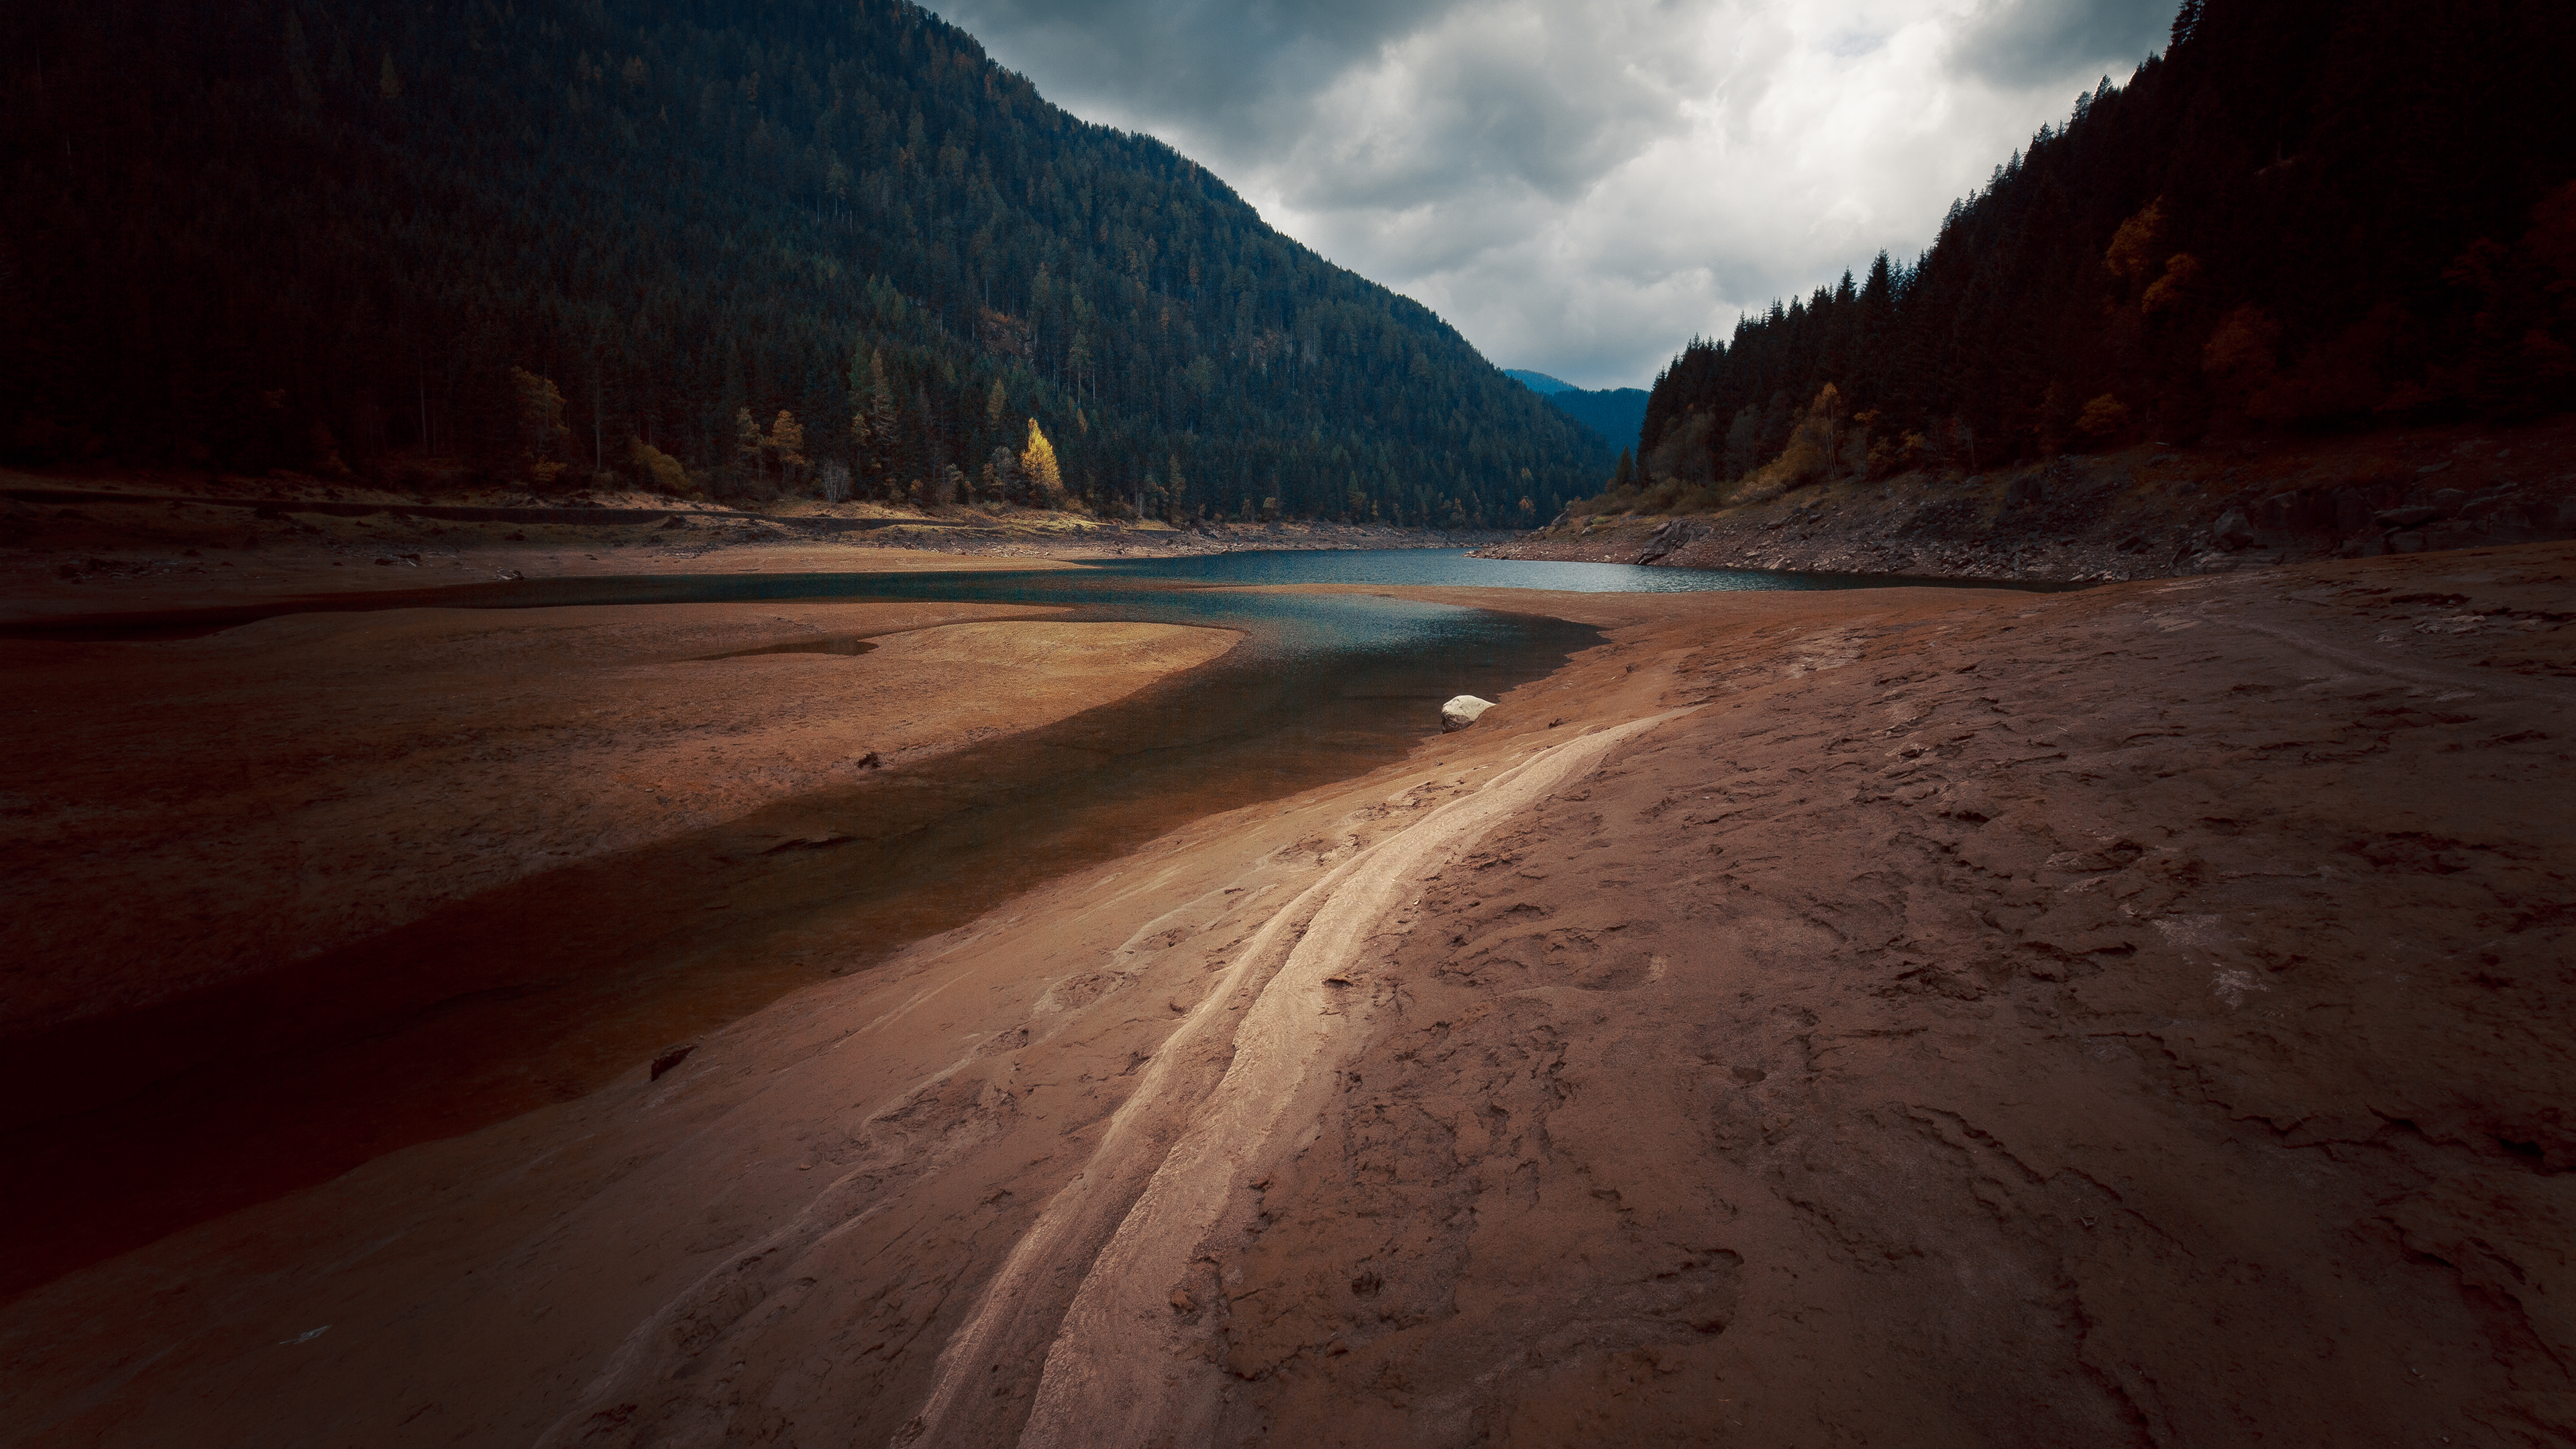 way to river 4k 1551644270 - Way To River 4k - river wallpapers, nature wallpapers, hd-wallpapers, behance wallpapers, 4k-wallpapers